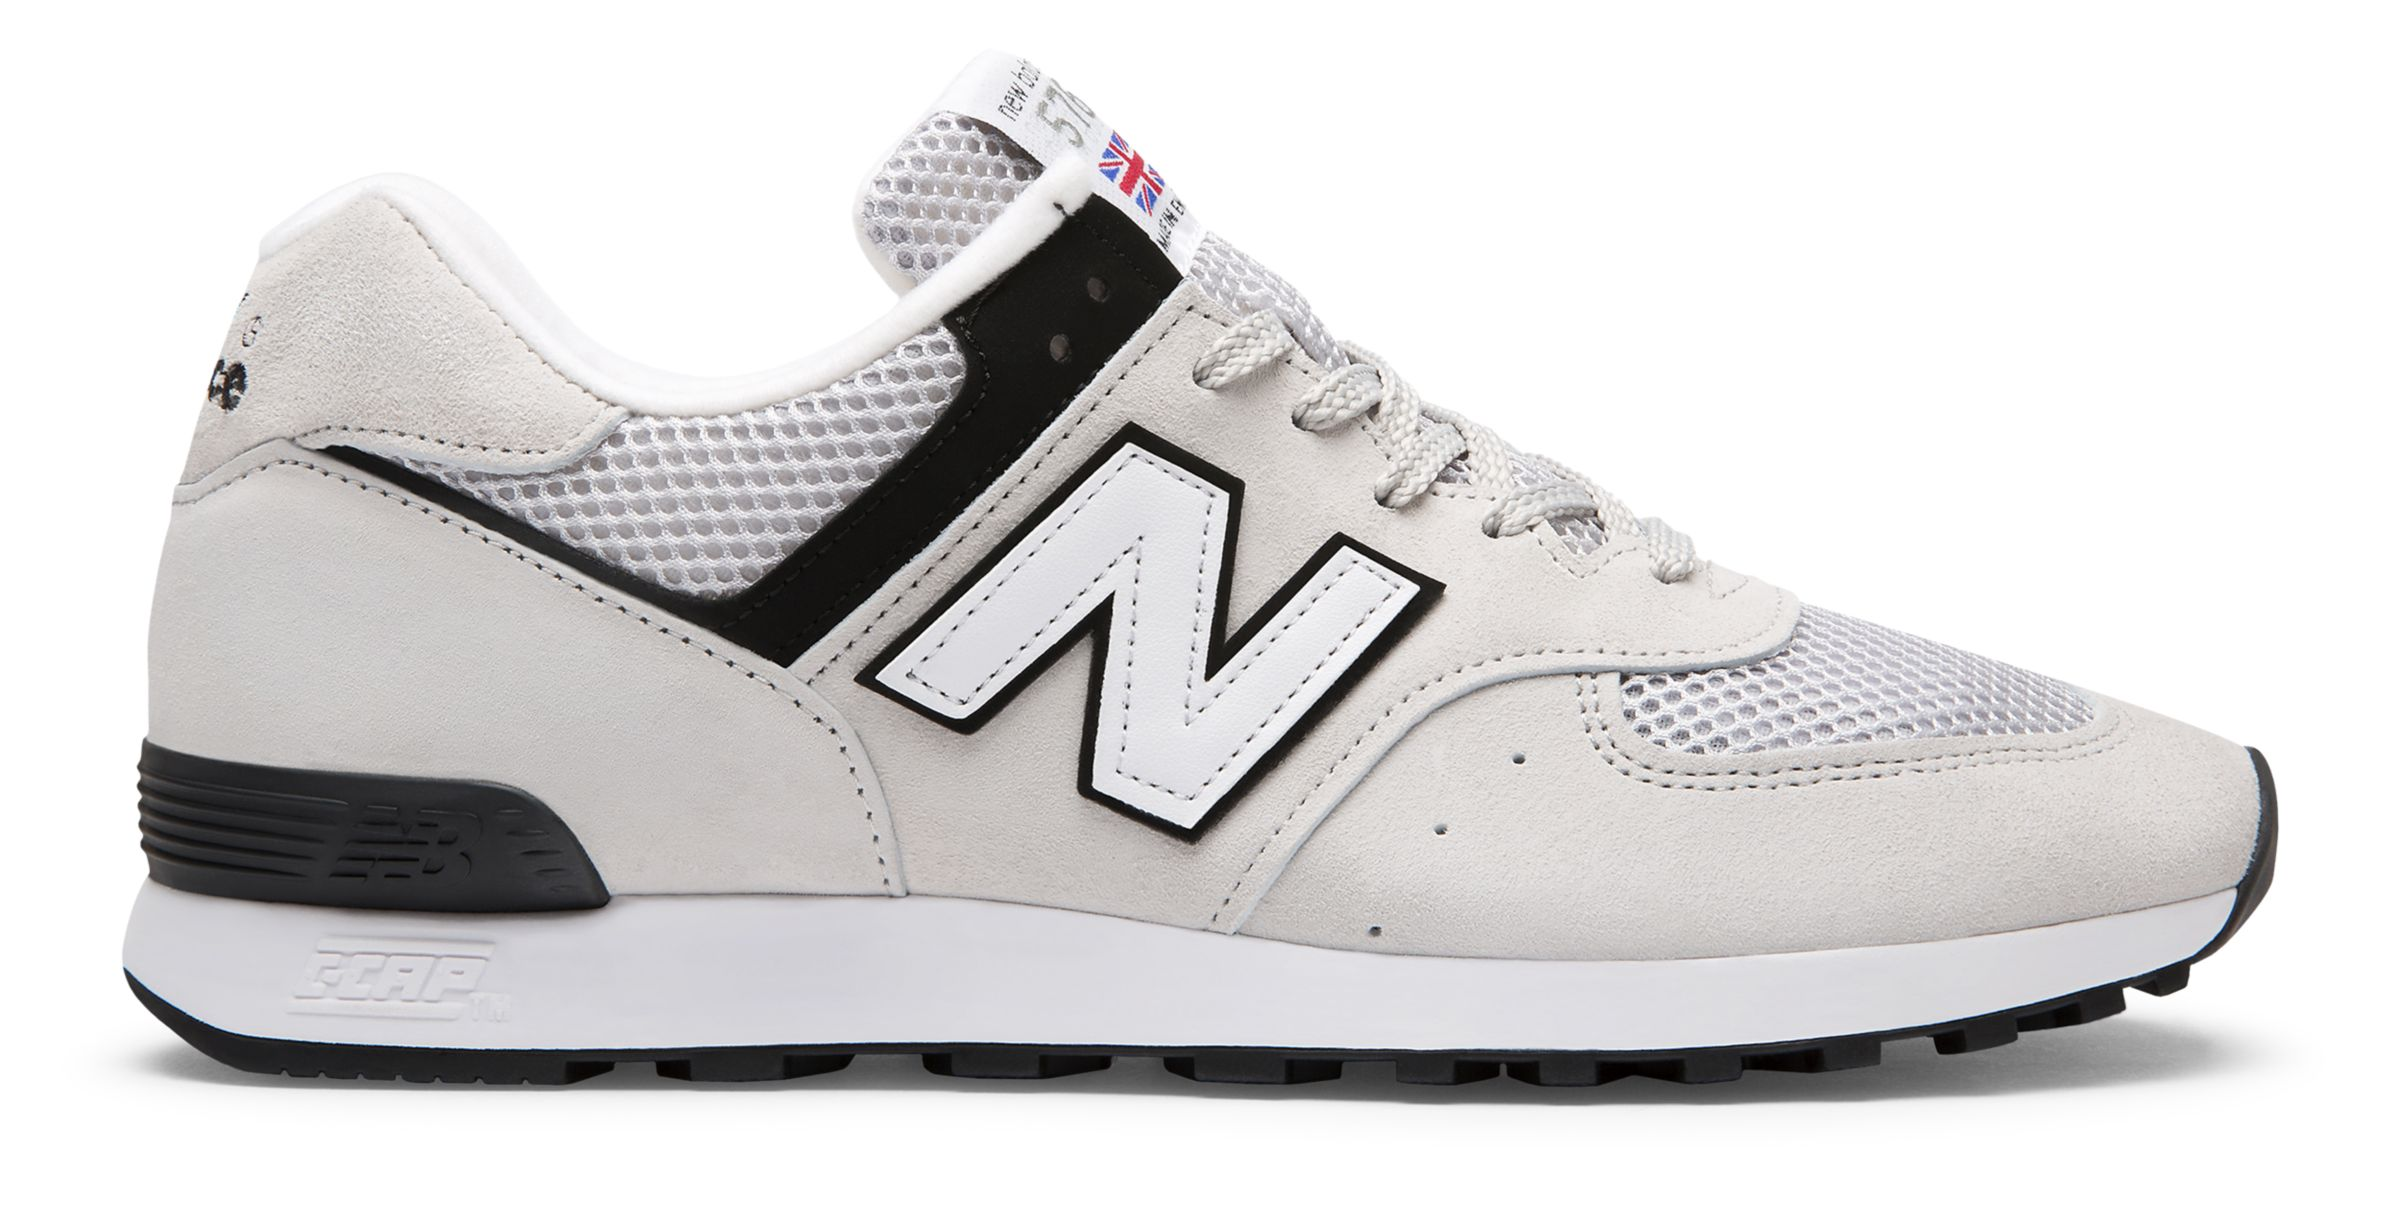 NB 576 Made in UK, Light Grey with Black & White